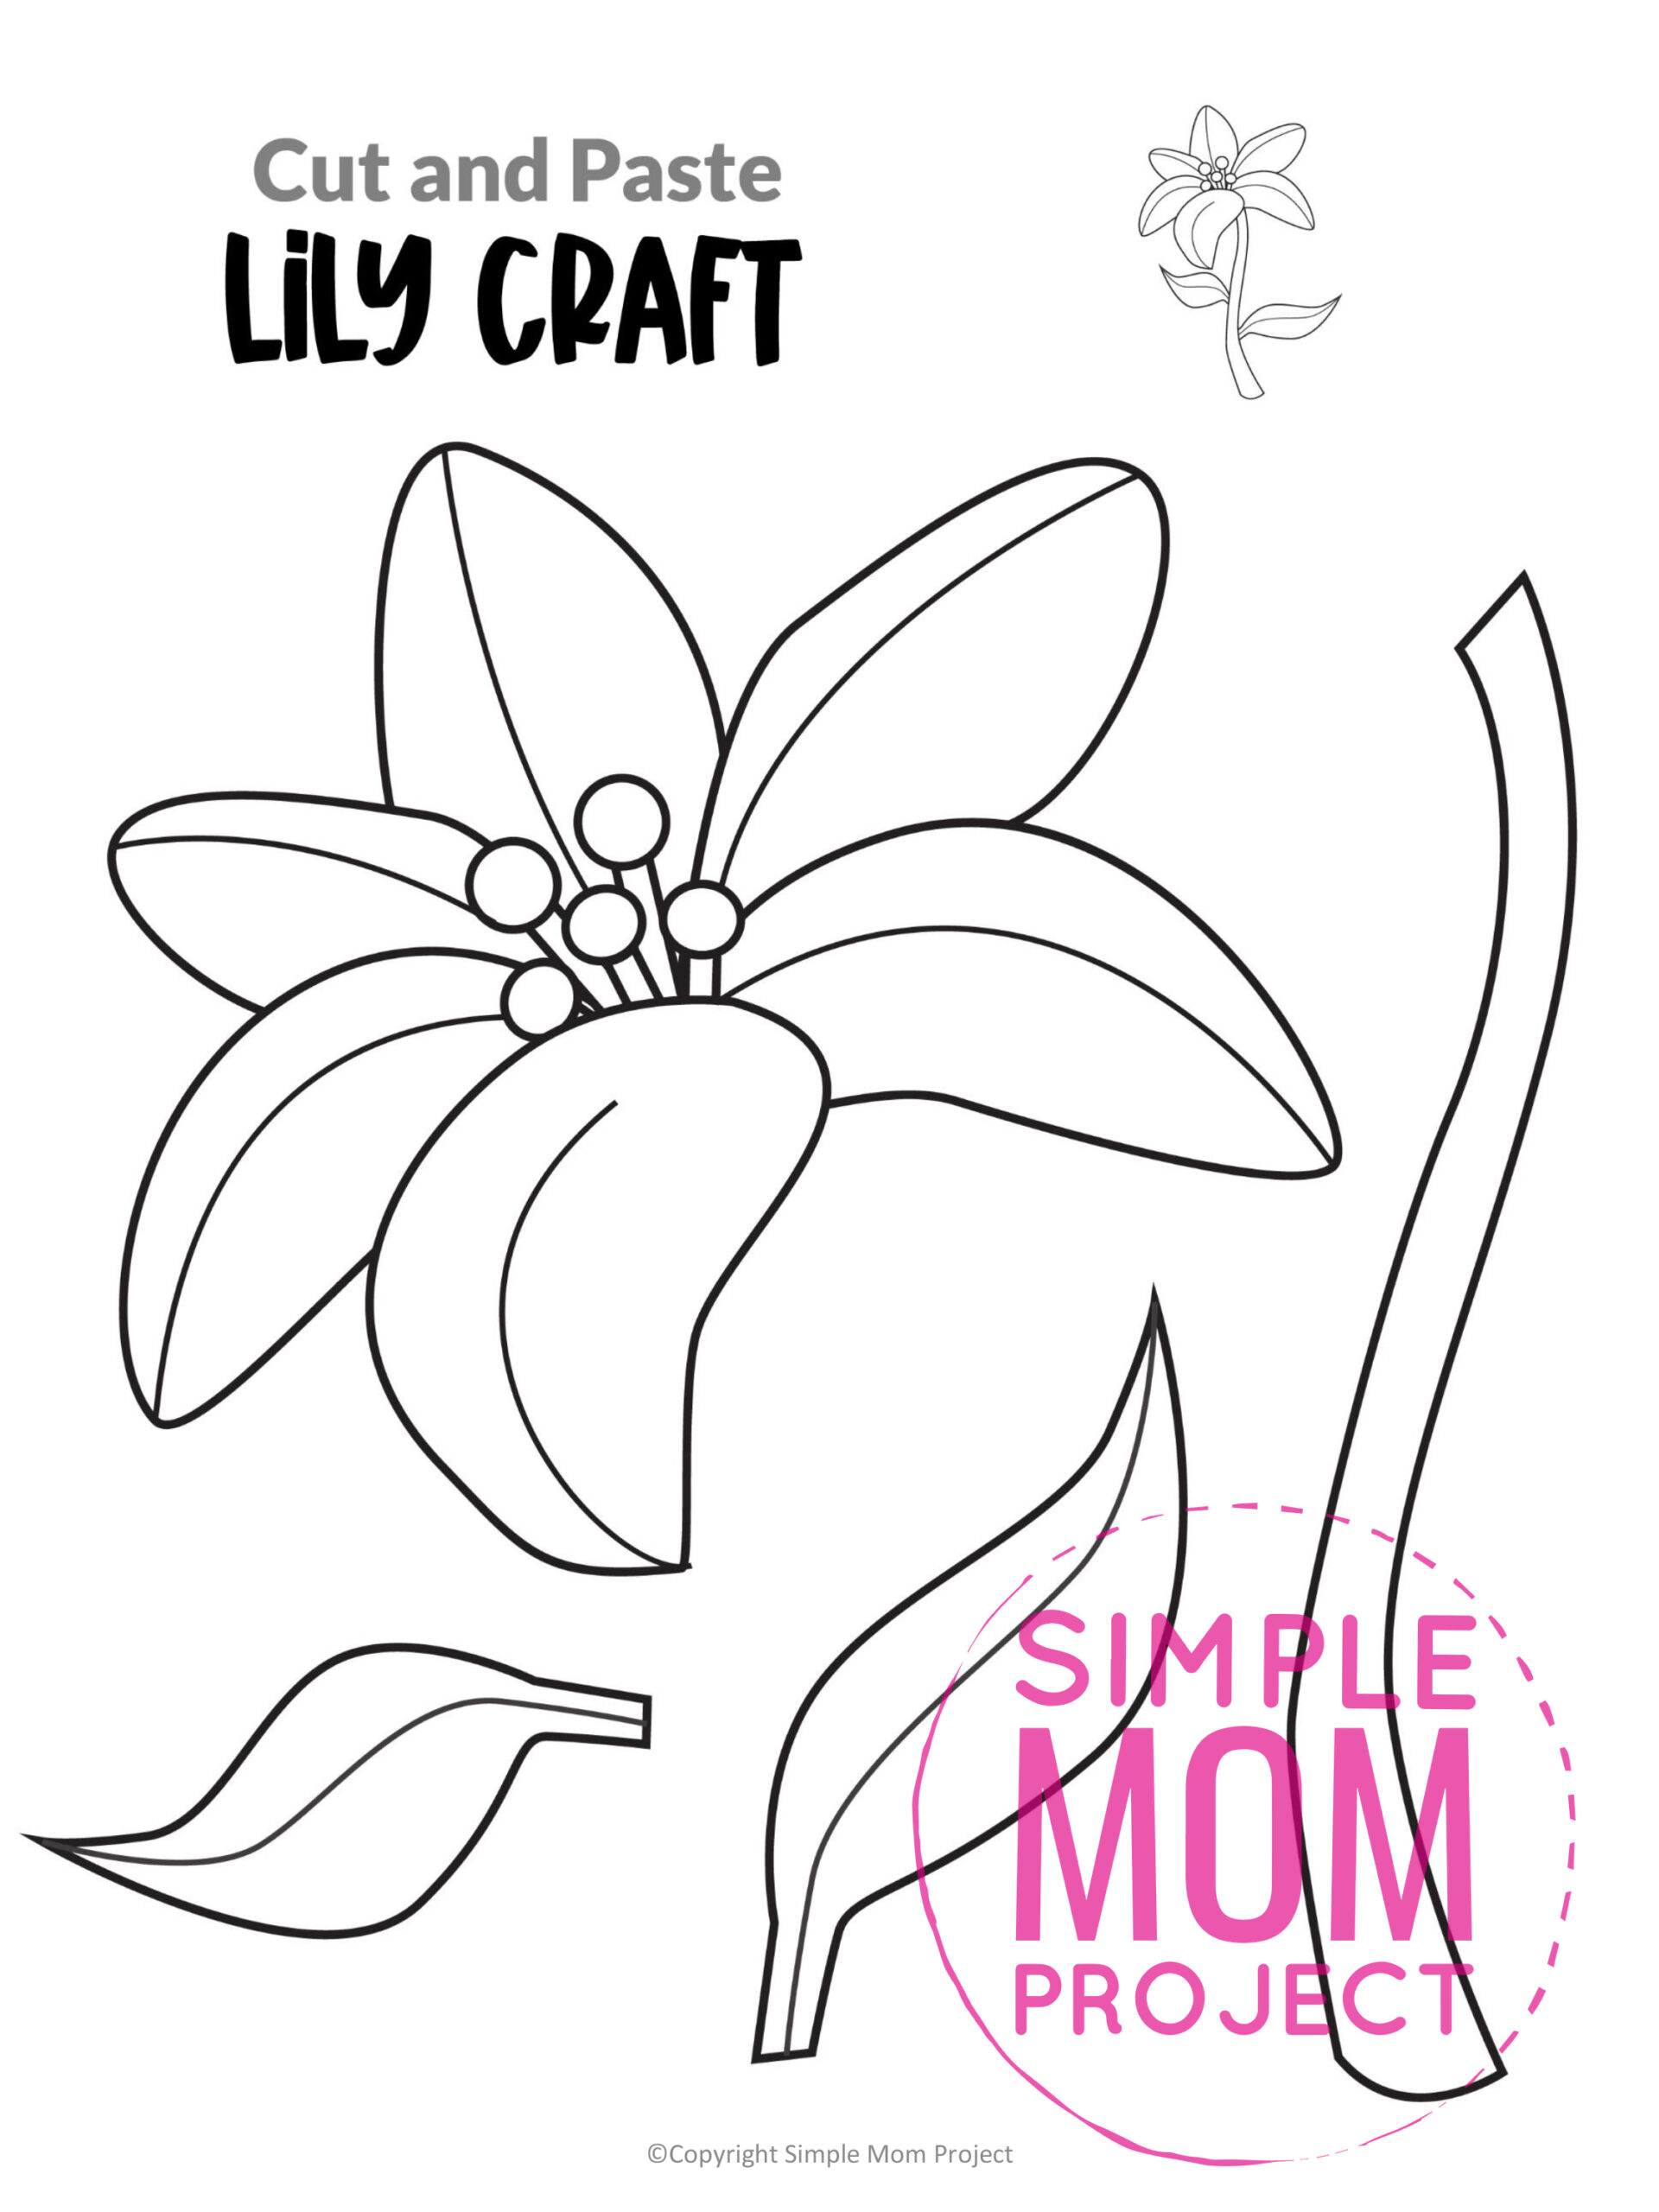 Free Printable Lily Flower Craft template for kids, Lily craft for toddlers and Lily craft for kindergartners